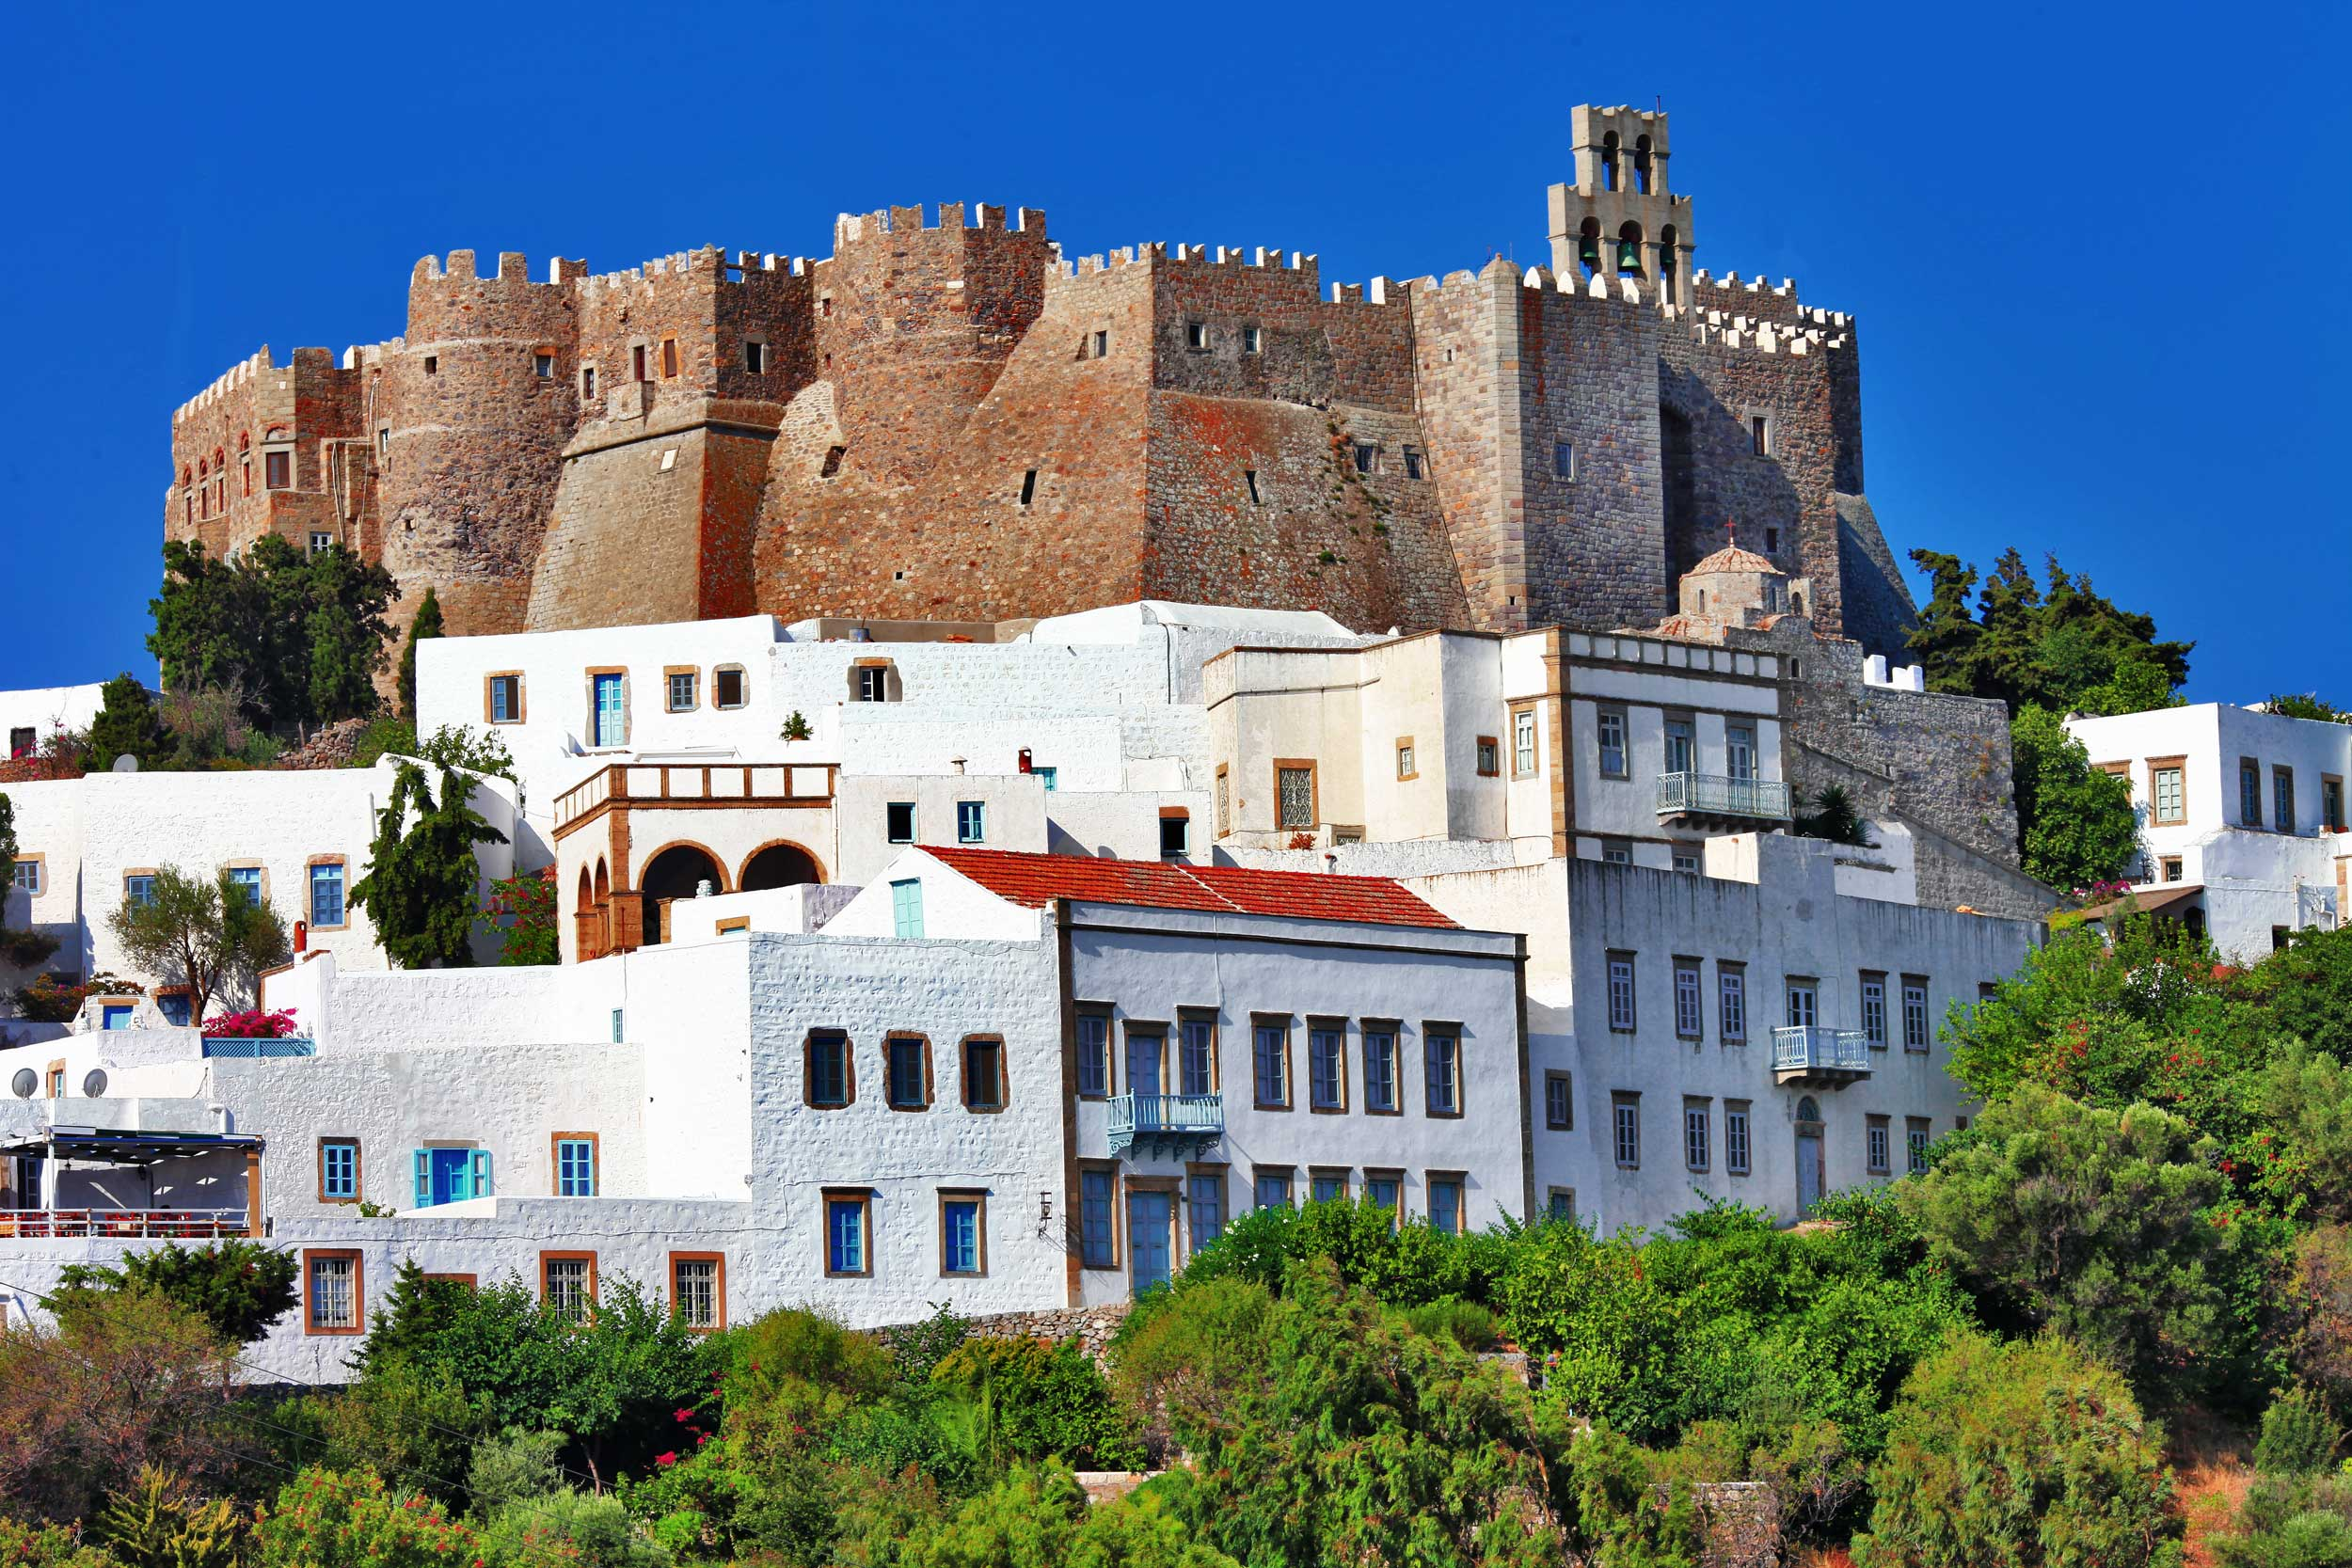 A fortress looming over whitewashed buildings on a hillside, Greece